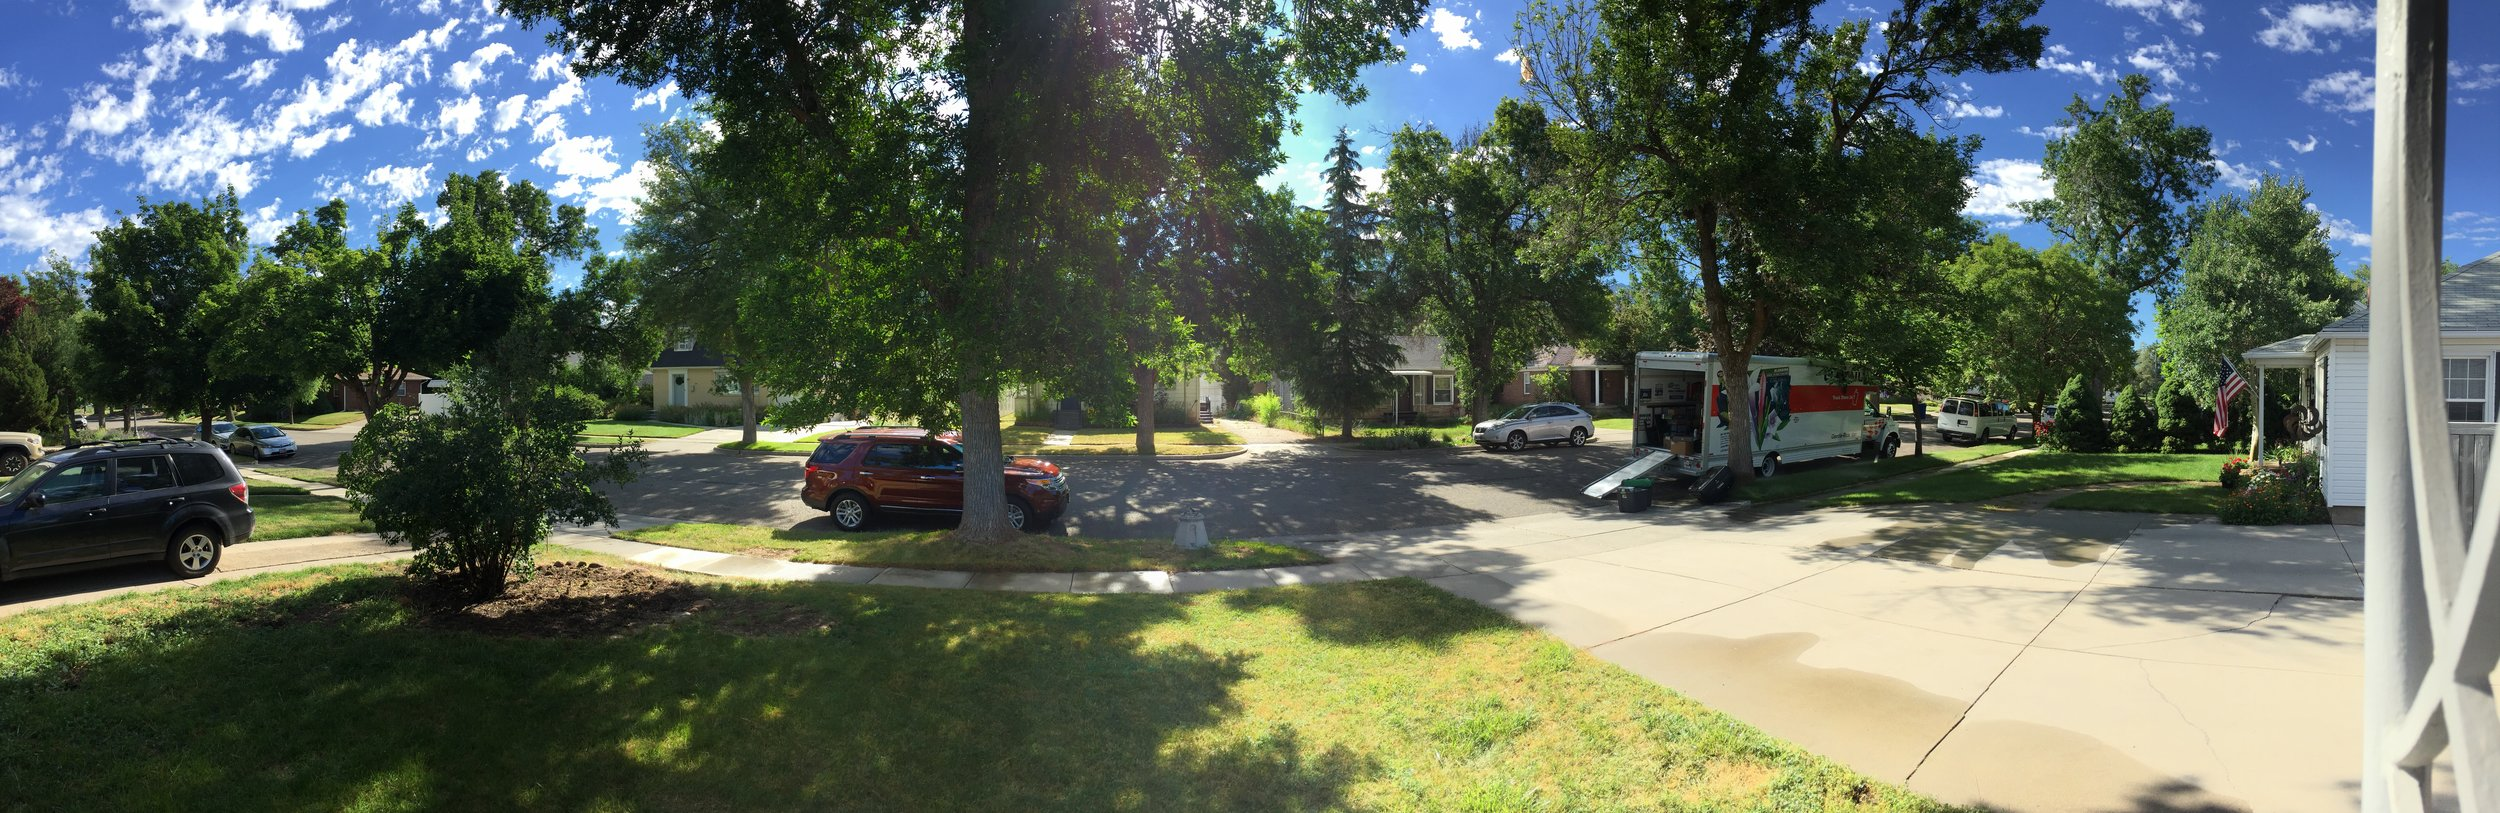 Beautiful new home! Blue sky, white puffy clouds, green tree-lined streets, and a lawn that needs a little work.